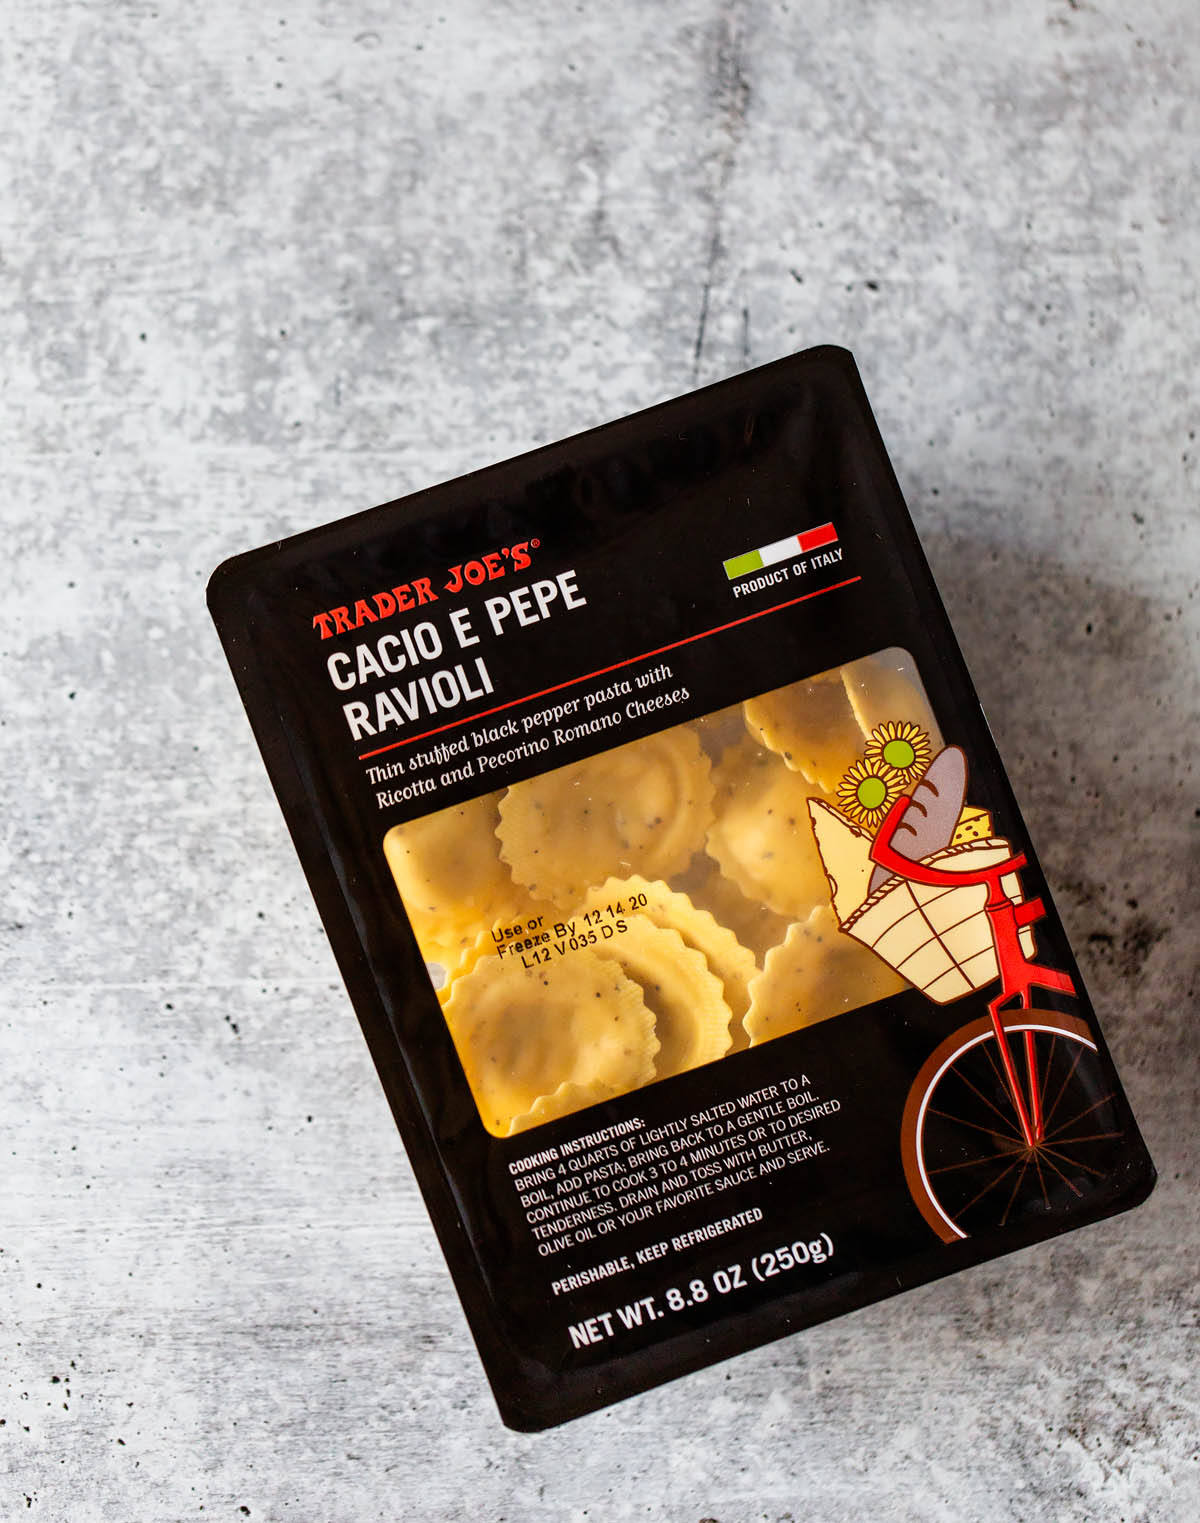 trader joes cacio e pepe in the package